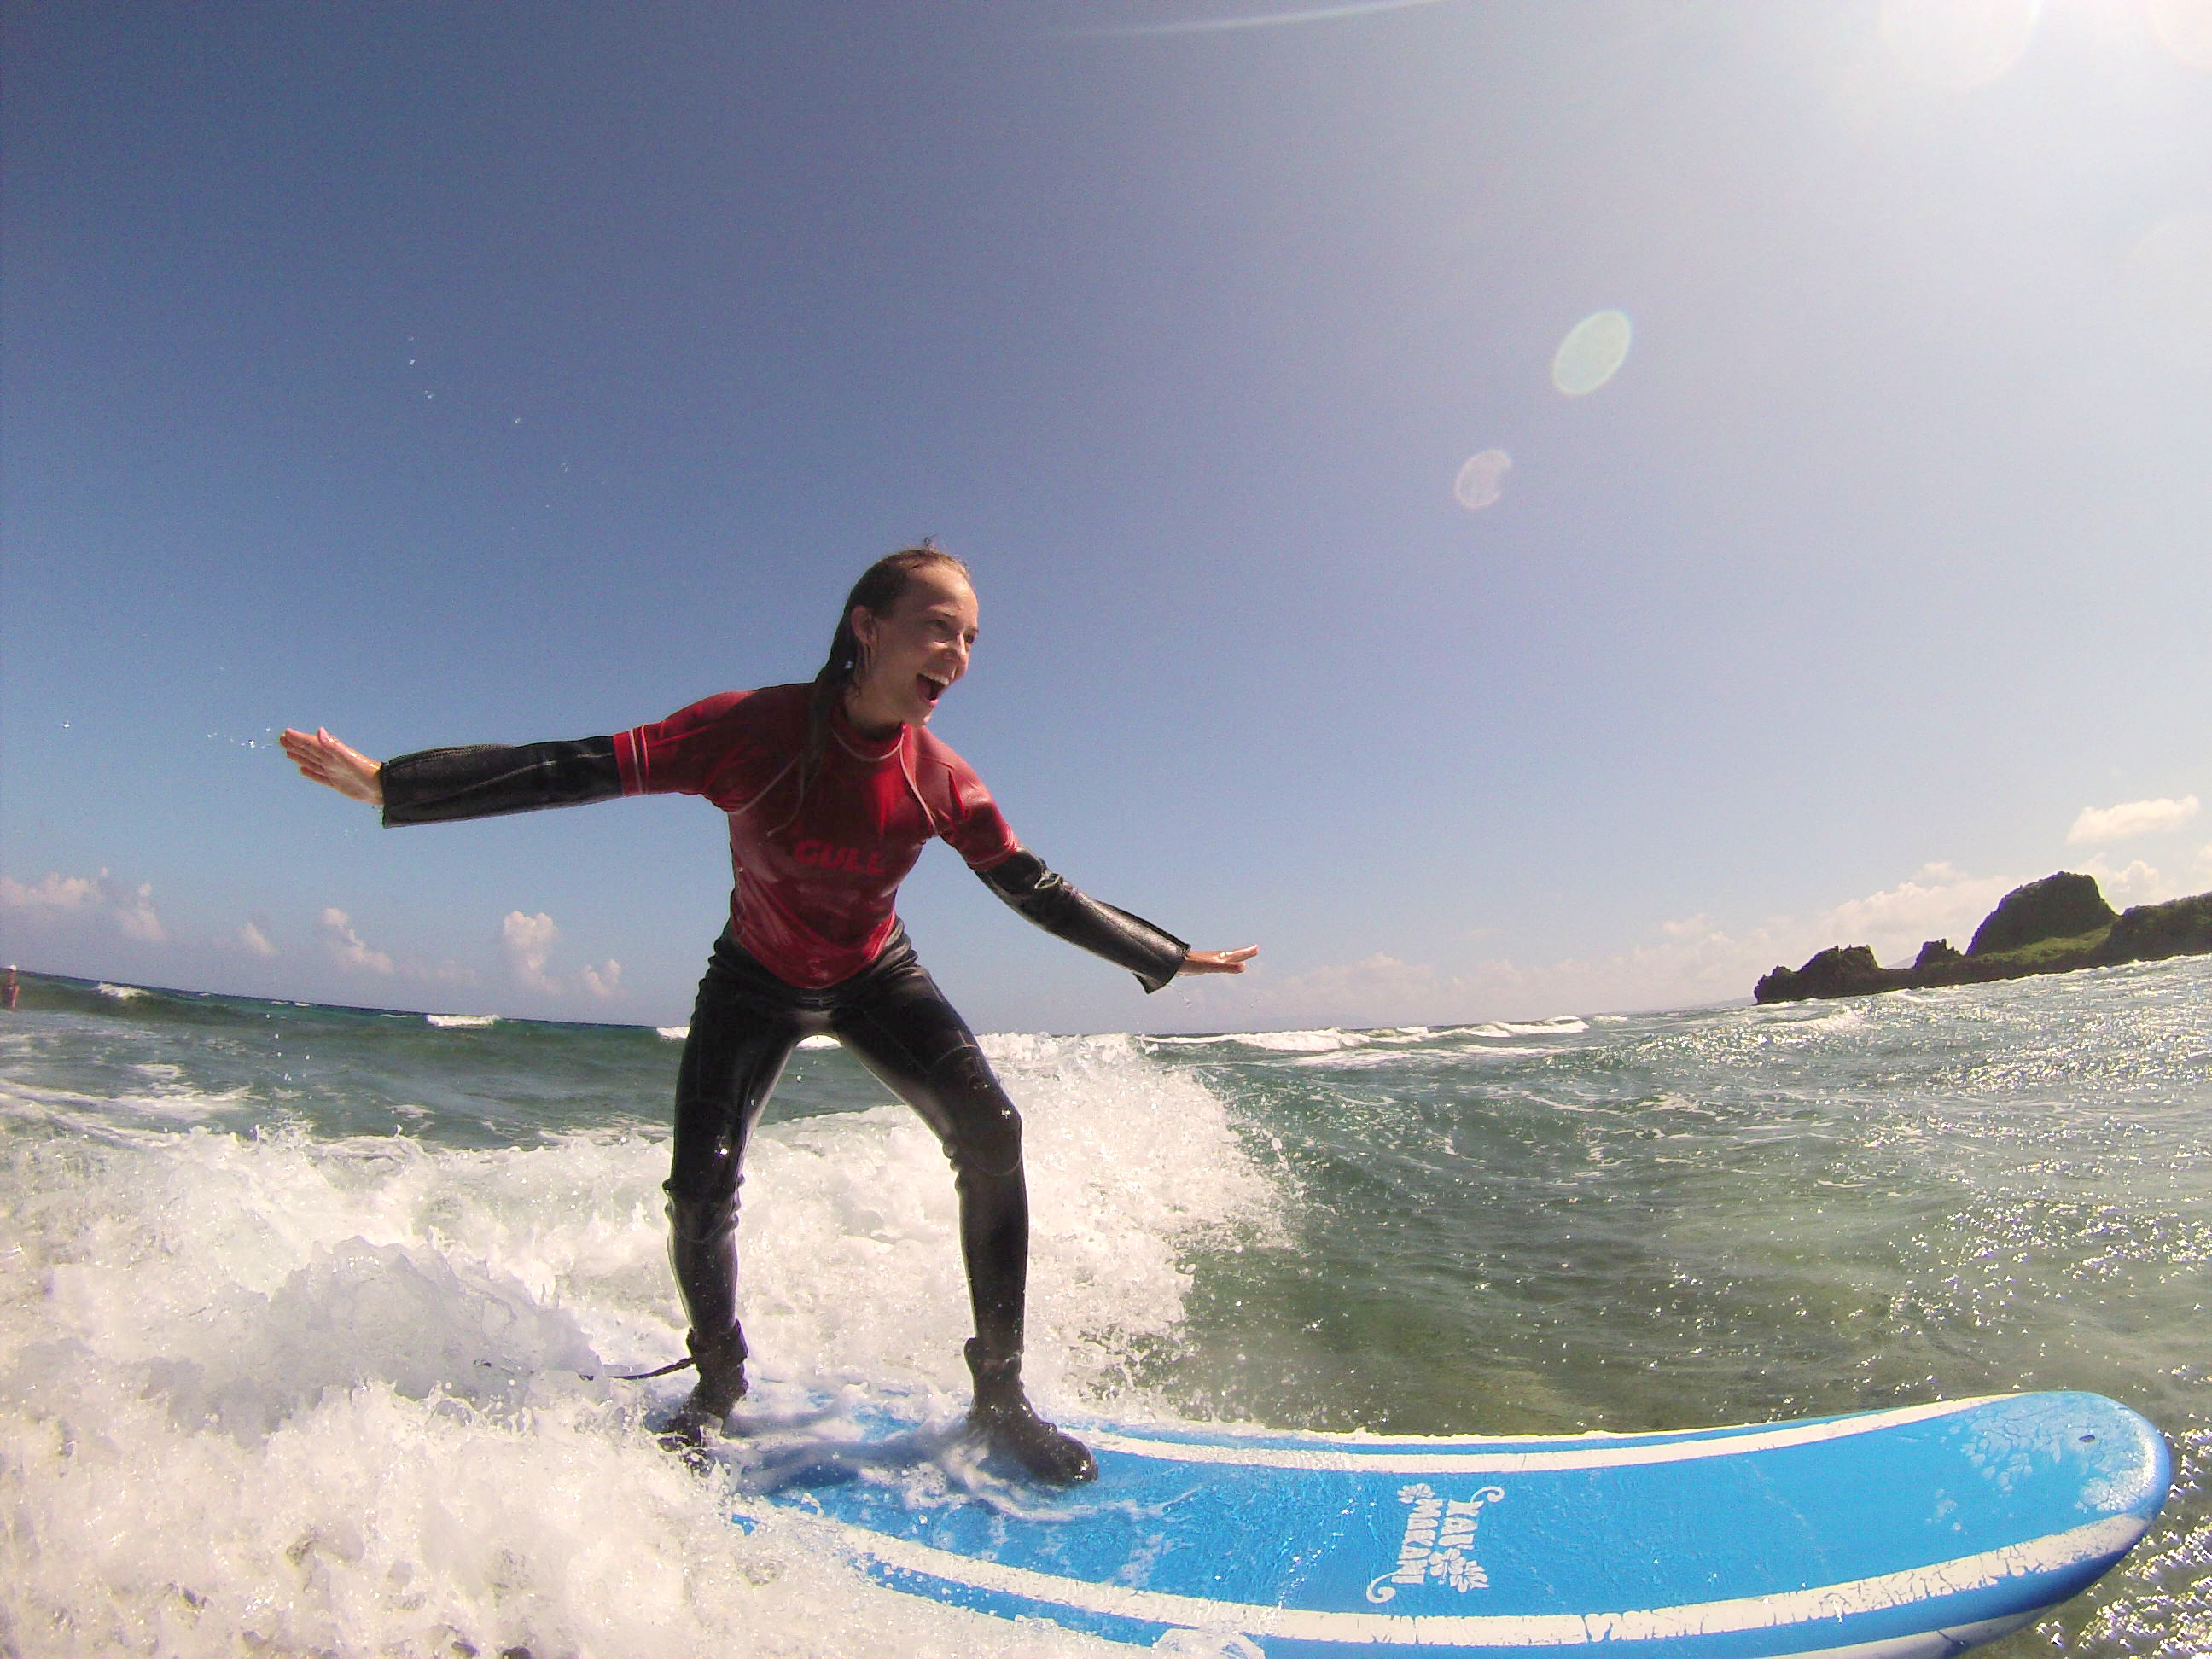 Surfing for the first time2